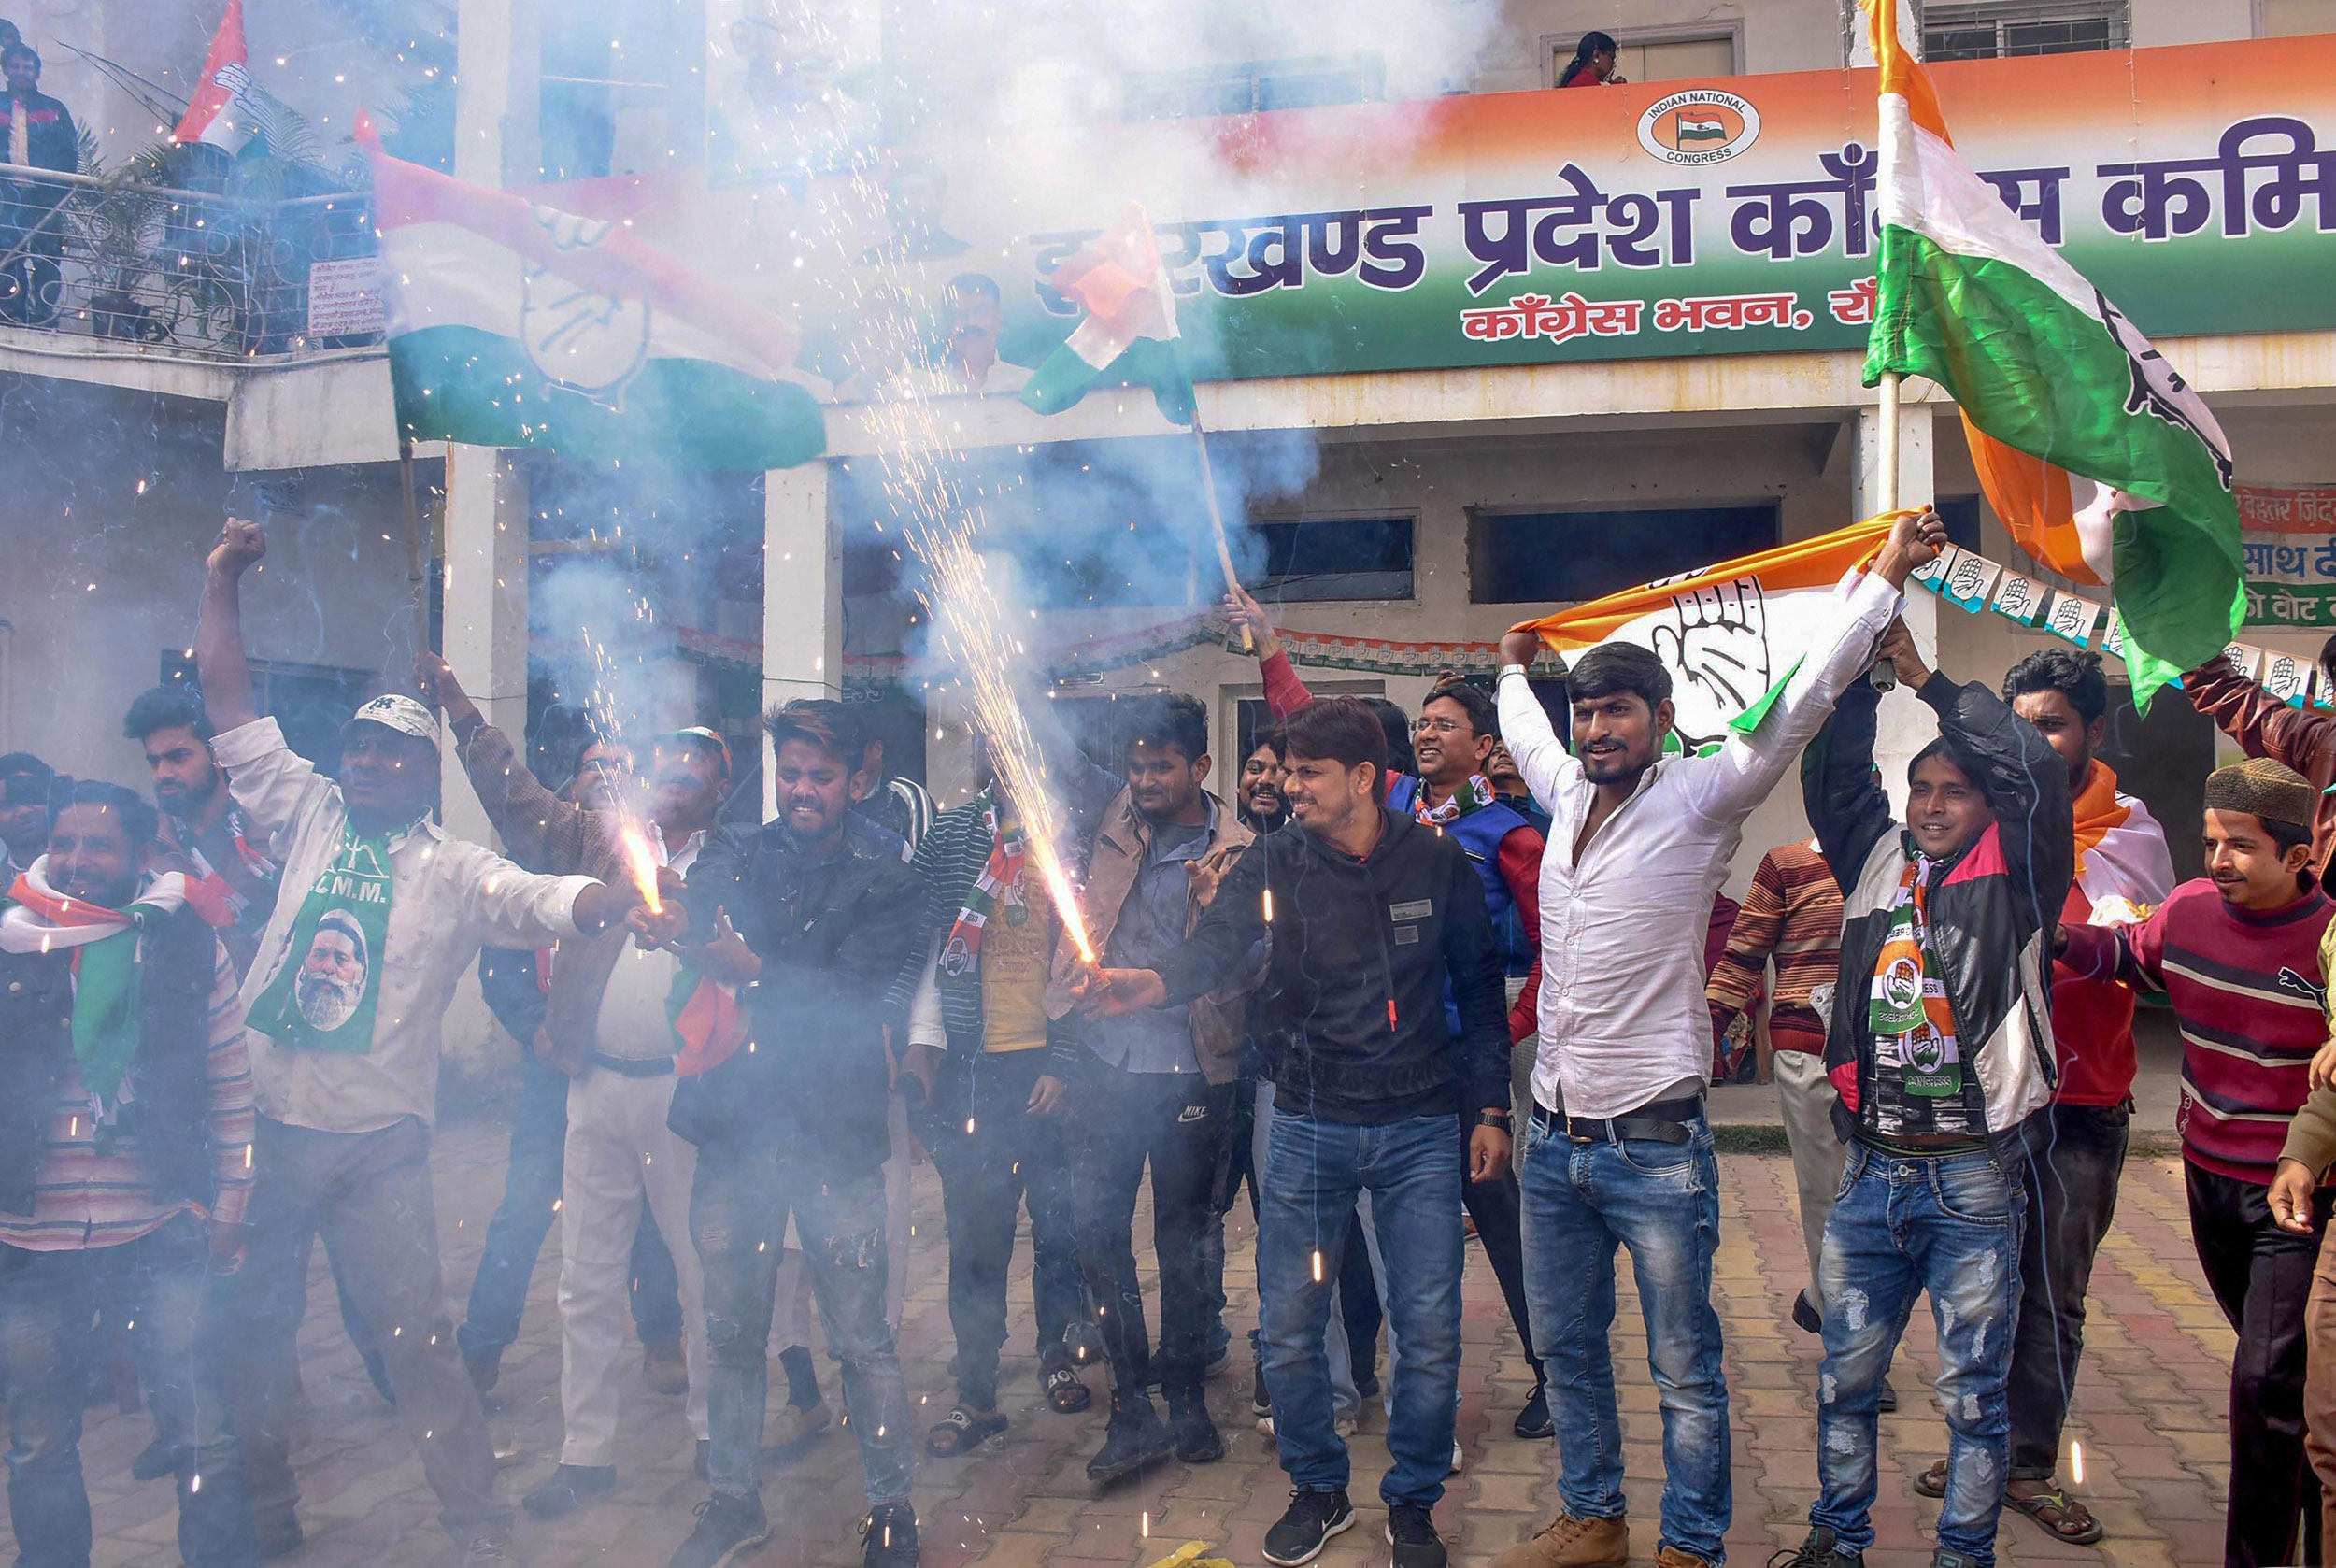 Jharkhand Mukti Morcha and Congress workers celebrate in Ranchi on Monday.